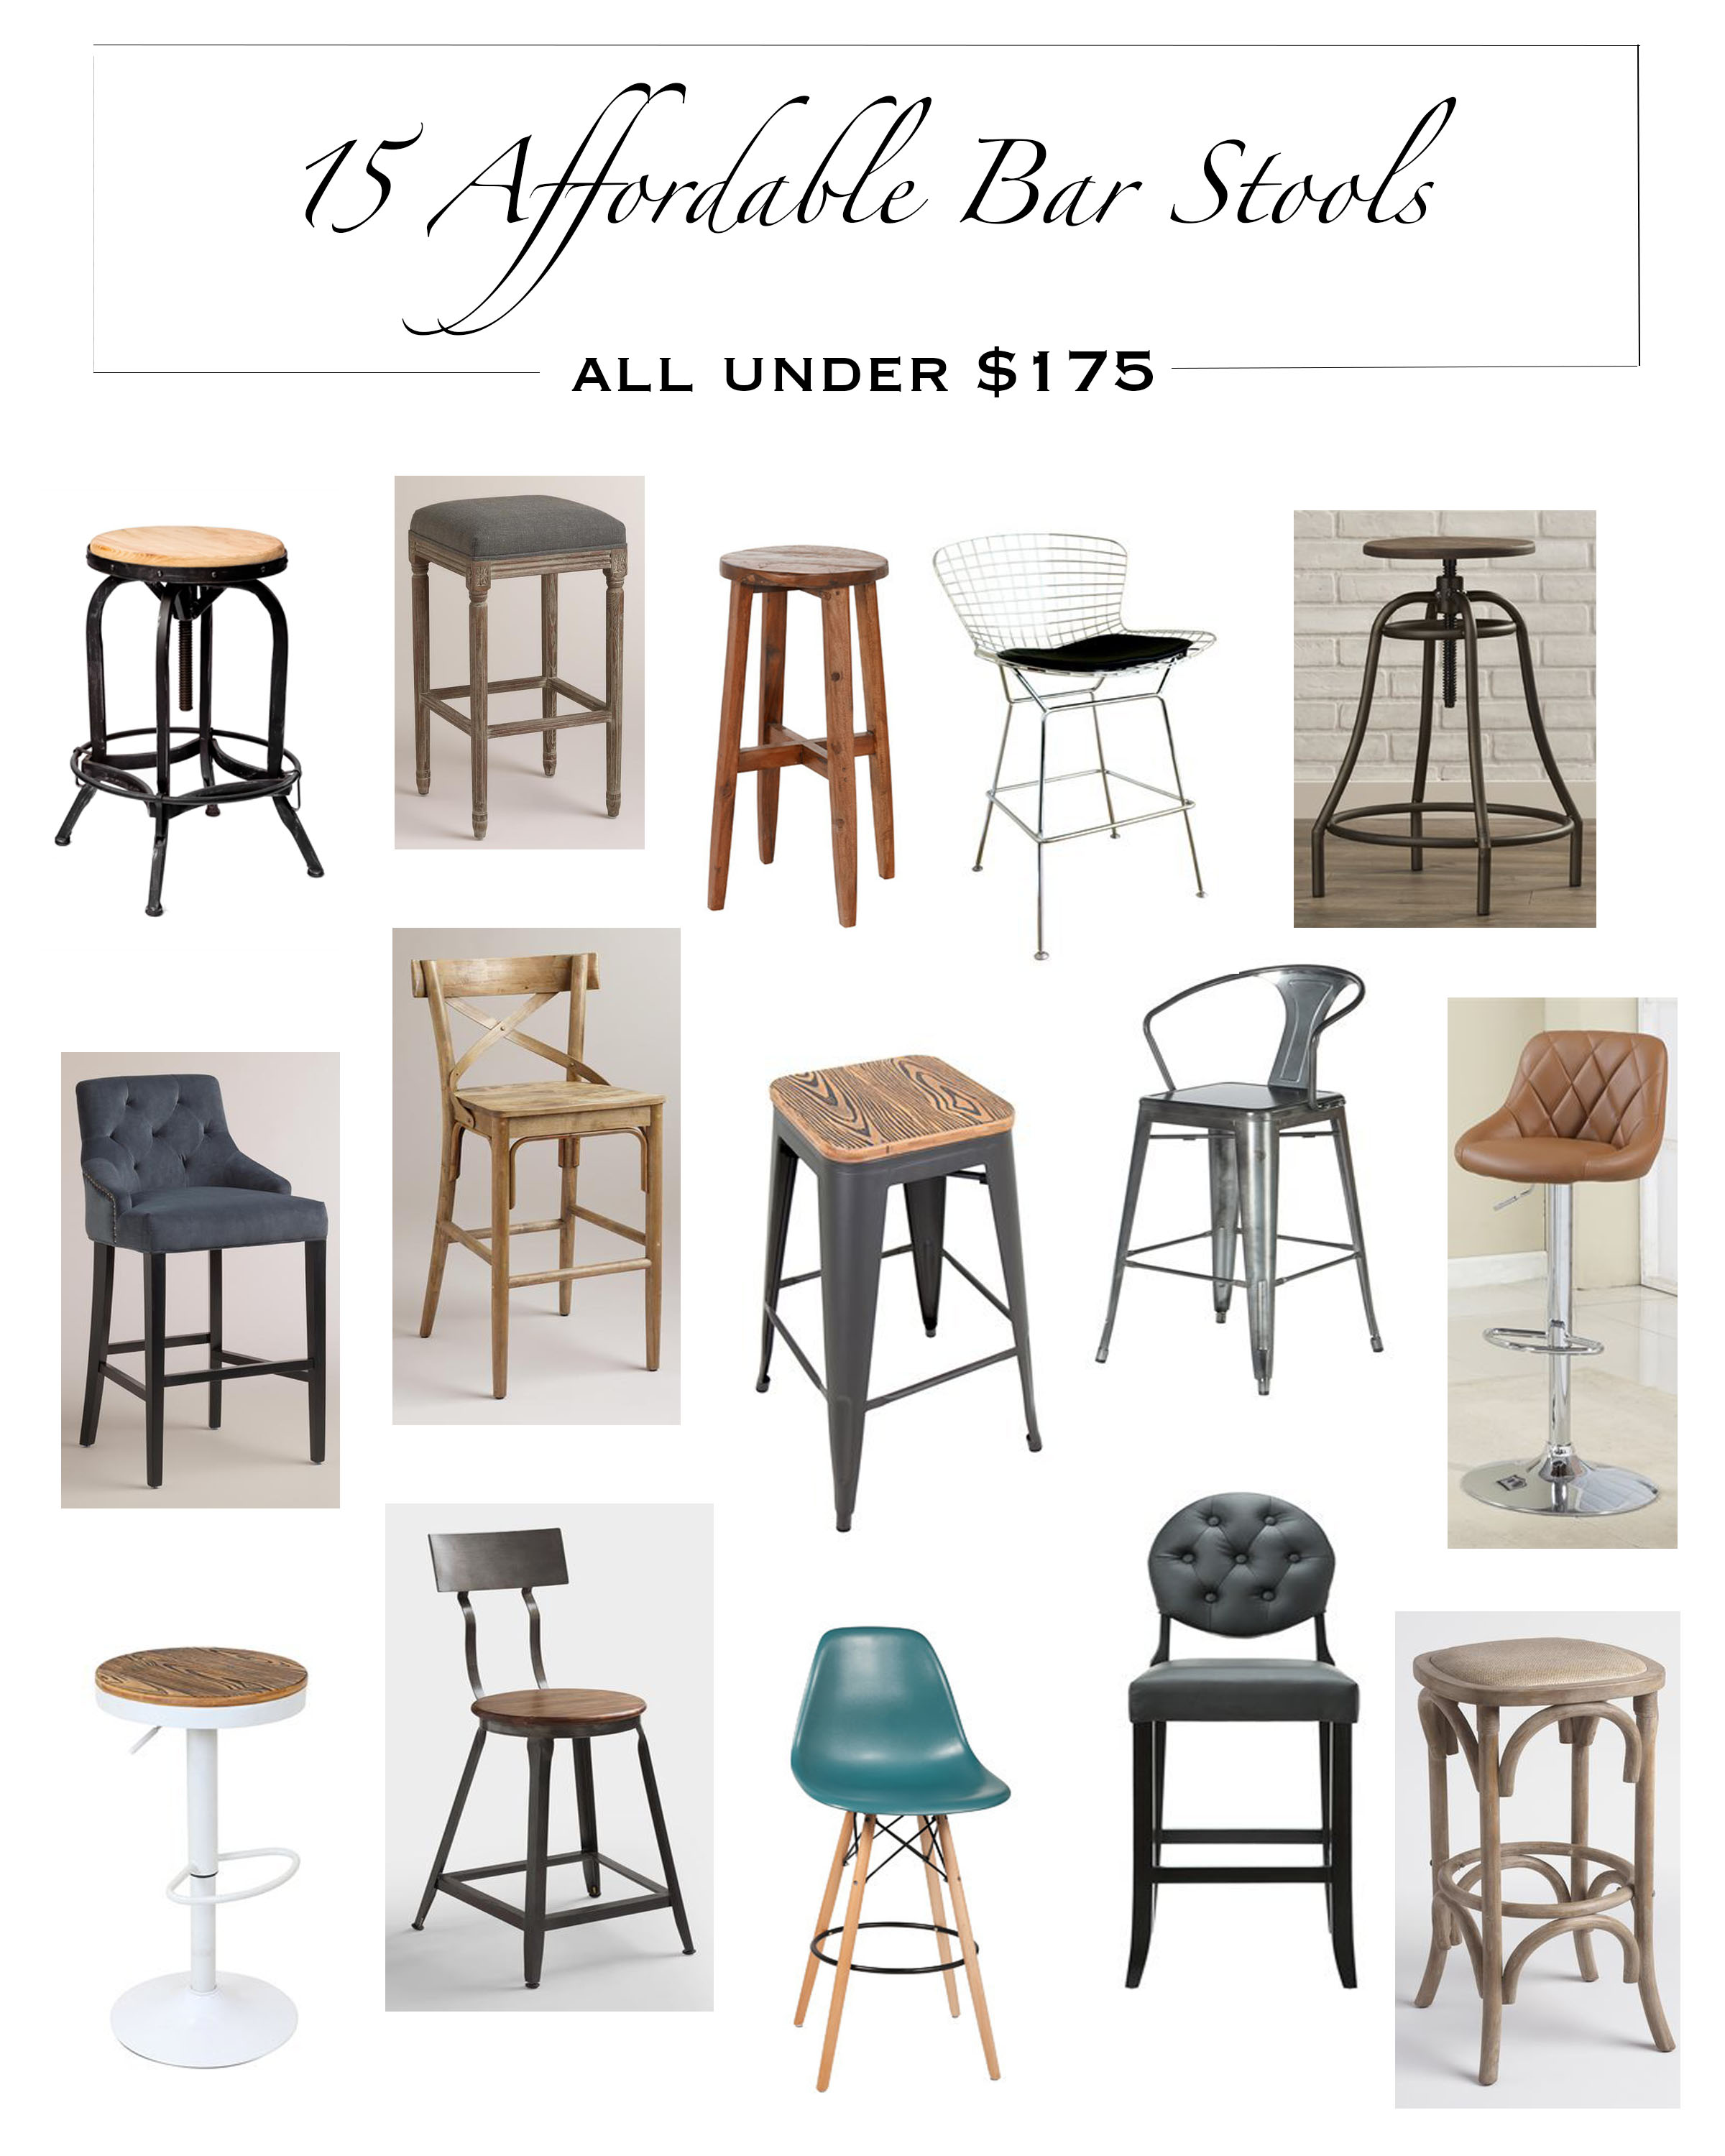 My 15 Top Affordable Bar Stools Under $175!